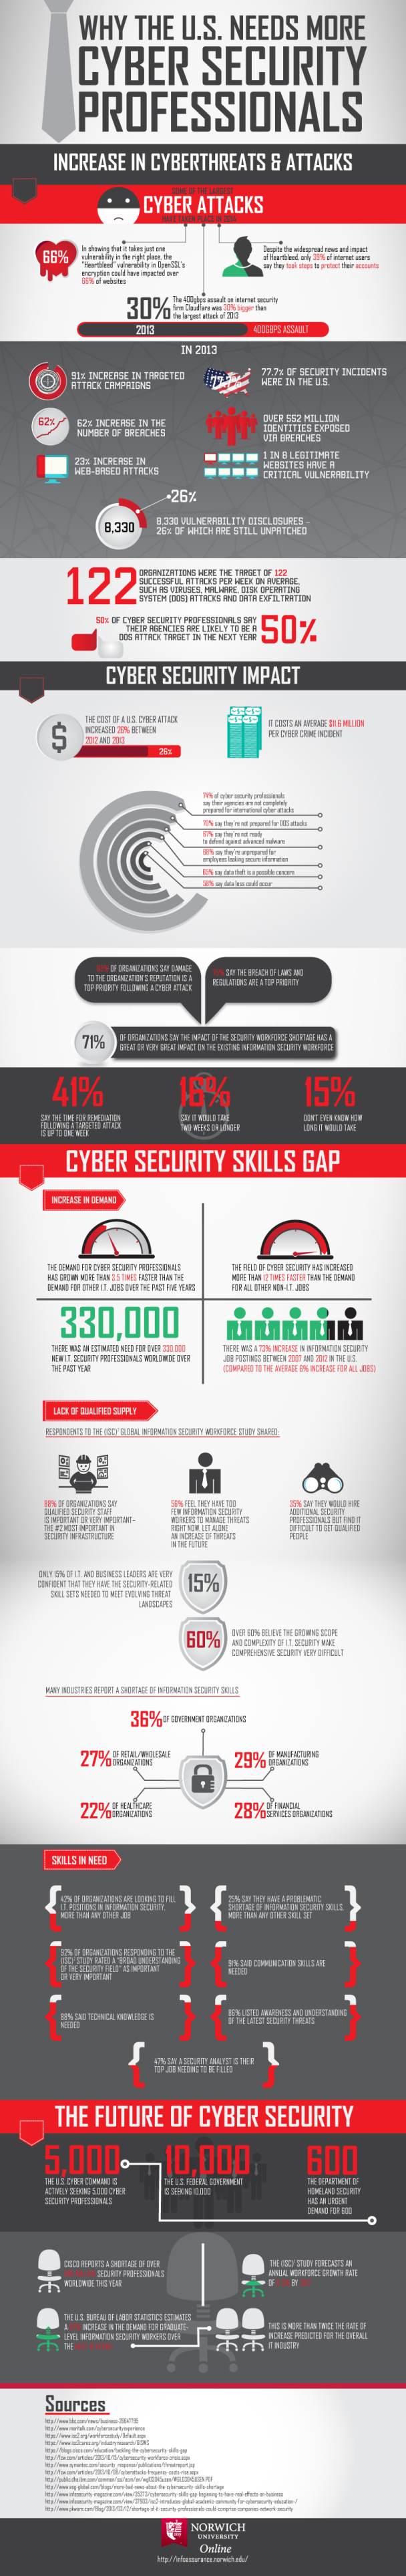 Why the US Needs More Cyber Professionals